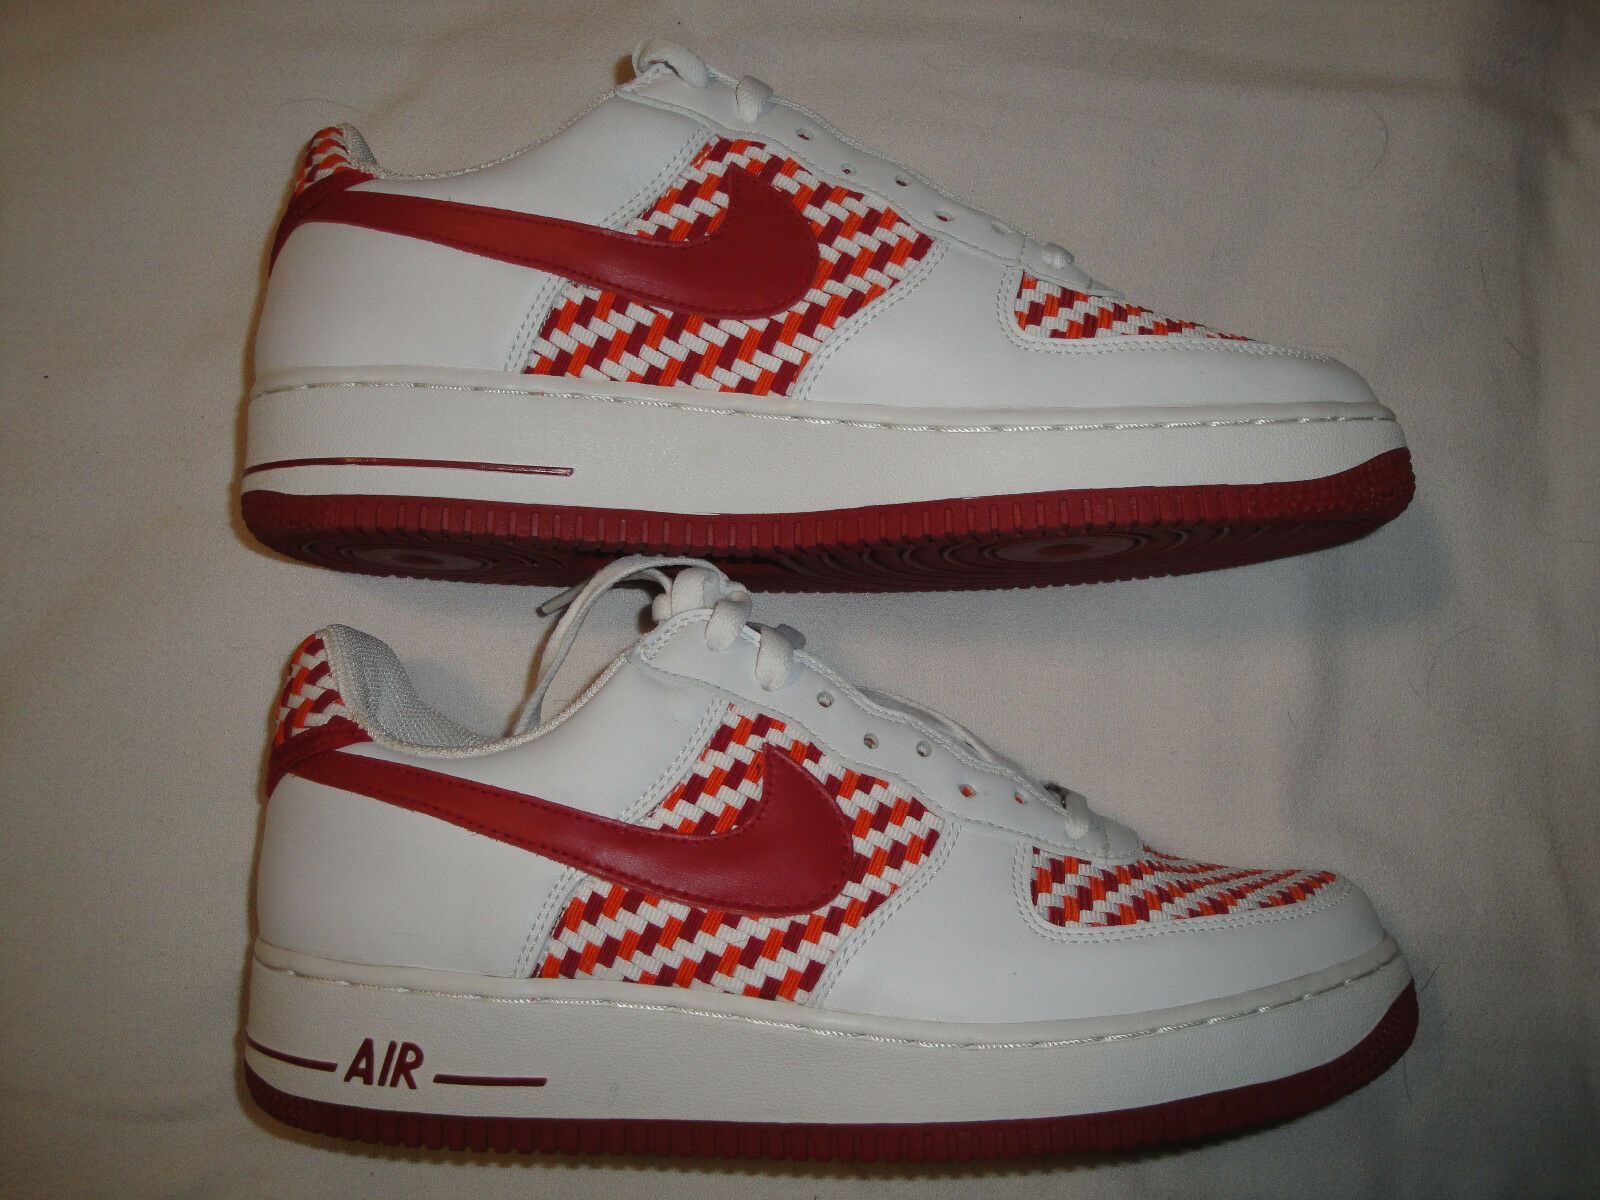 Nike Air Force estilo 1 Premium Basket Weave SZ 10,5 estilo Force casual salvaje 145b16